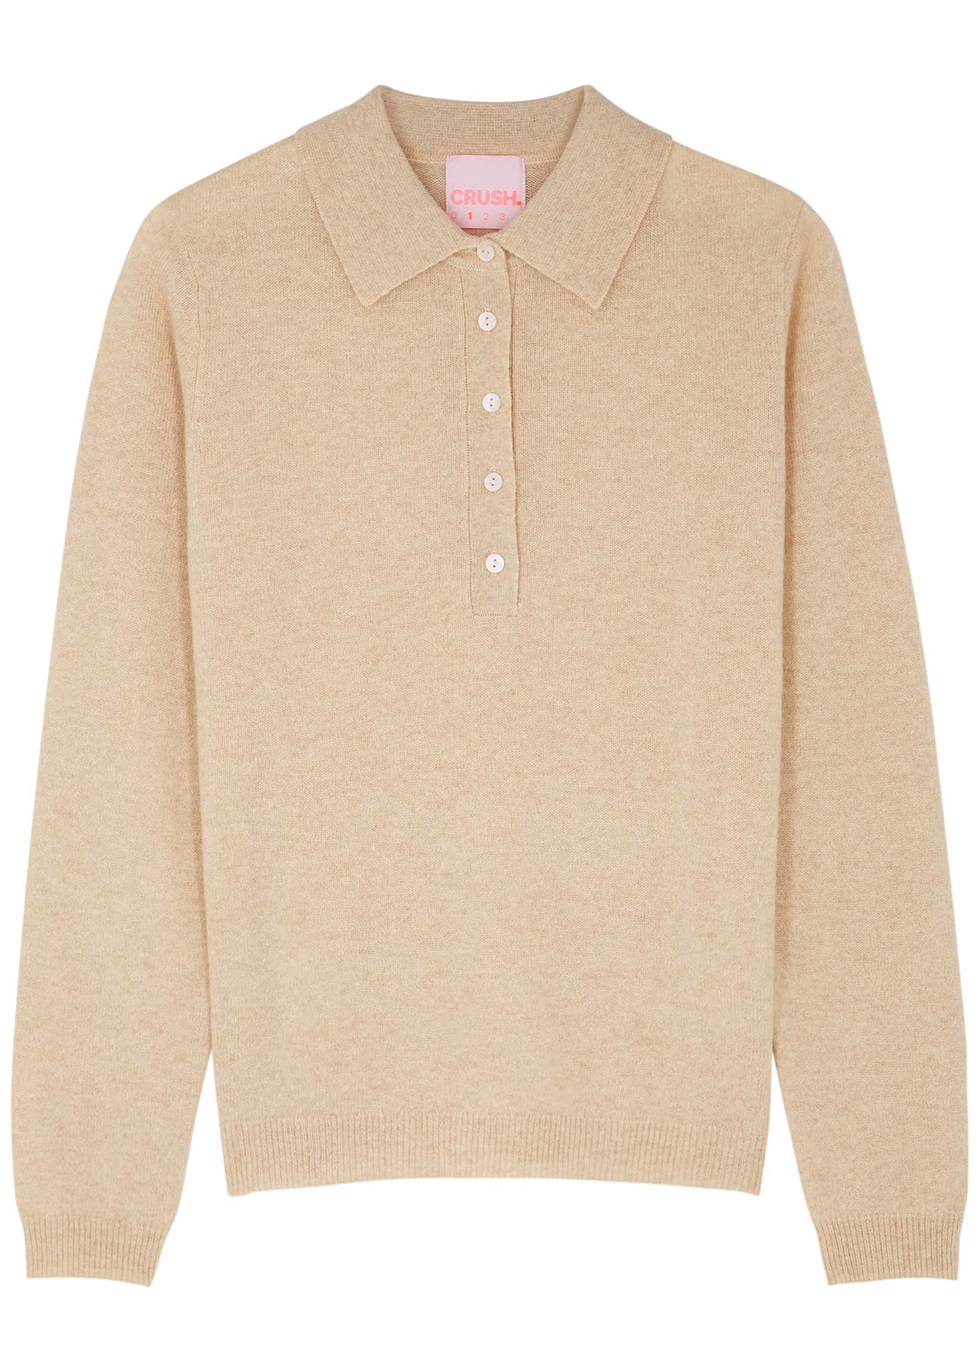 Troy sand cashmere polo jumper